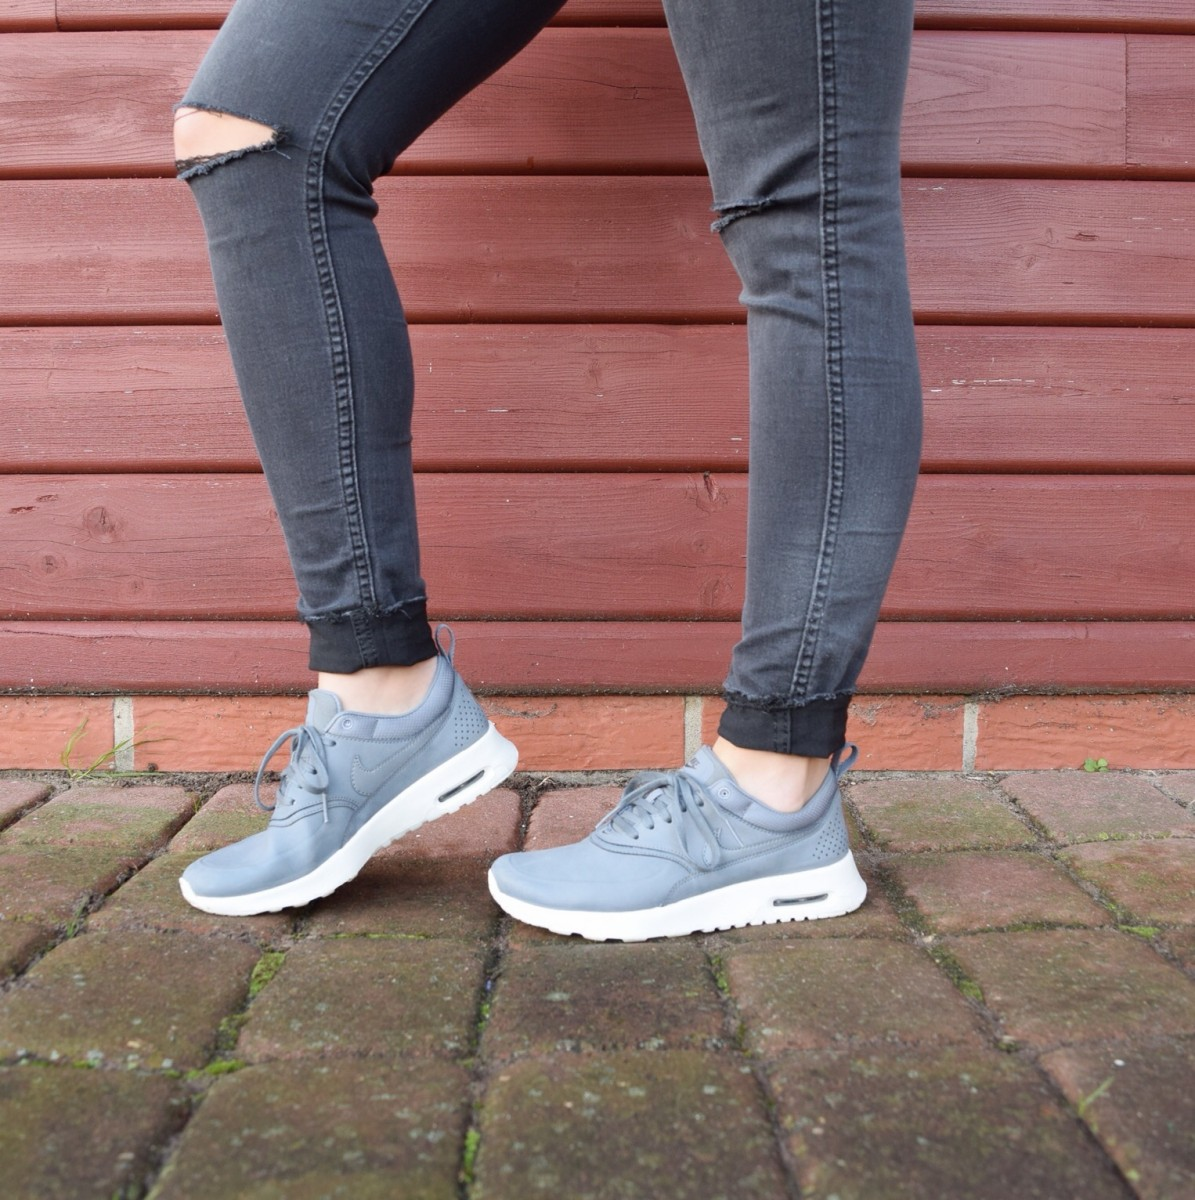 nike-air-max-thea-sneaker-ripped-jeans-swanted